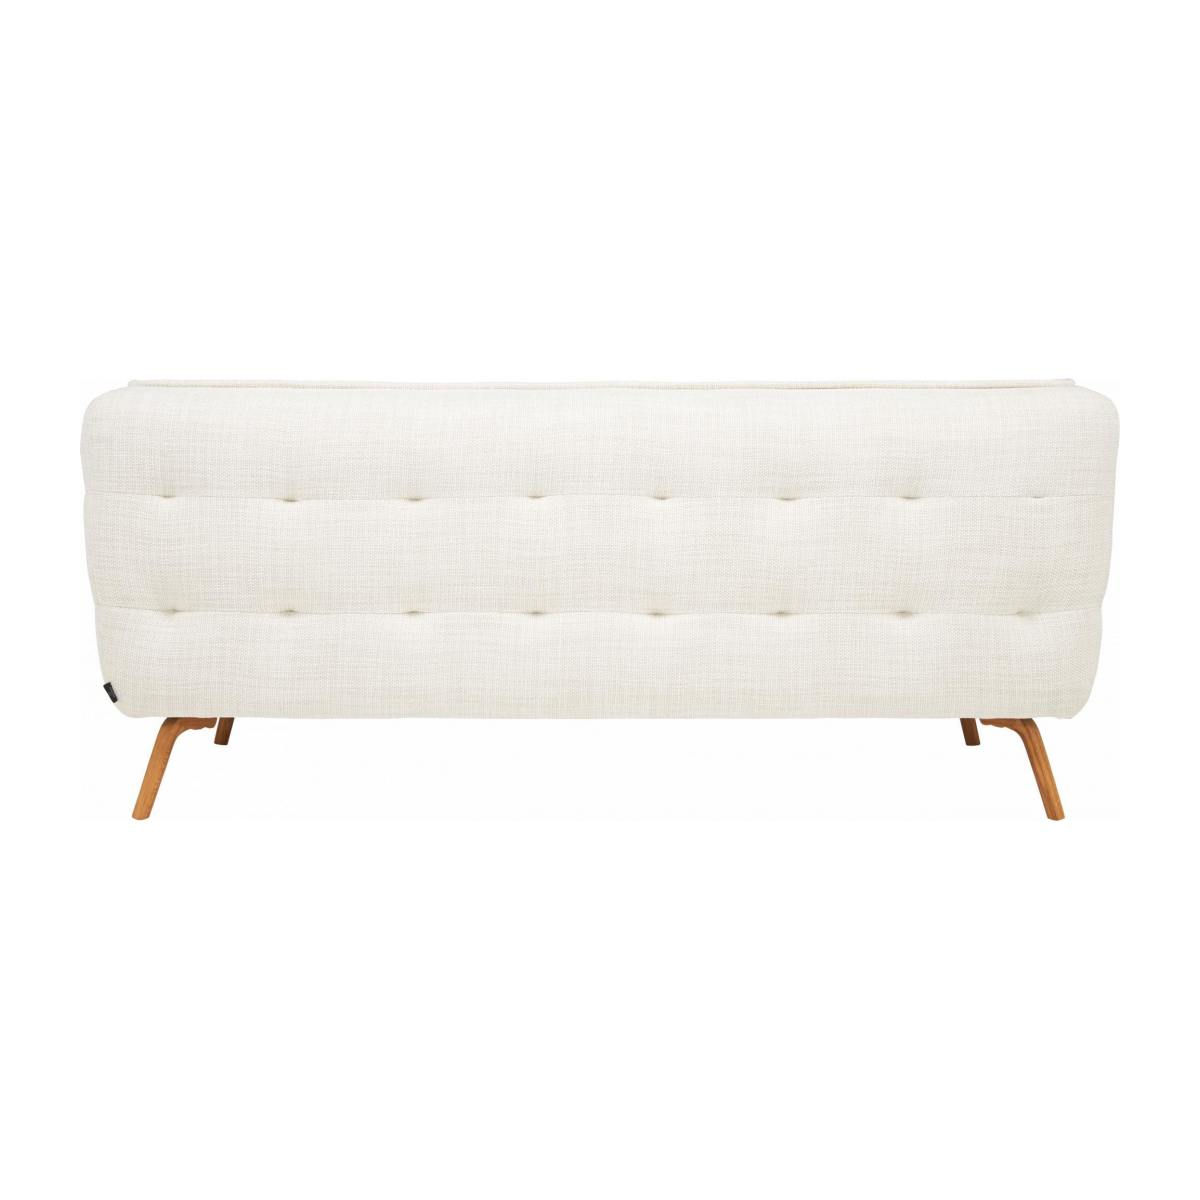 2 seater sofa in Fasoli fabric, snow white and oak legs n°3